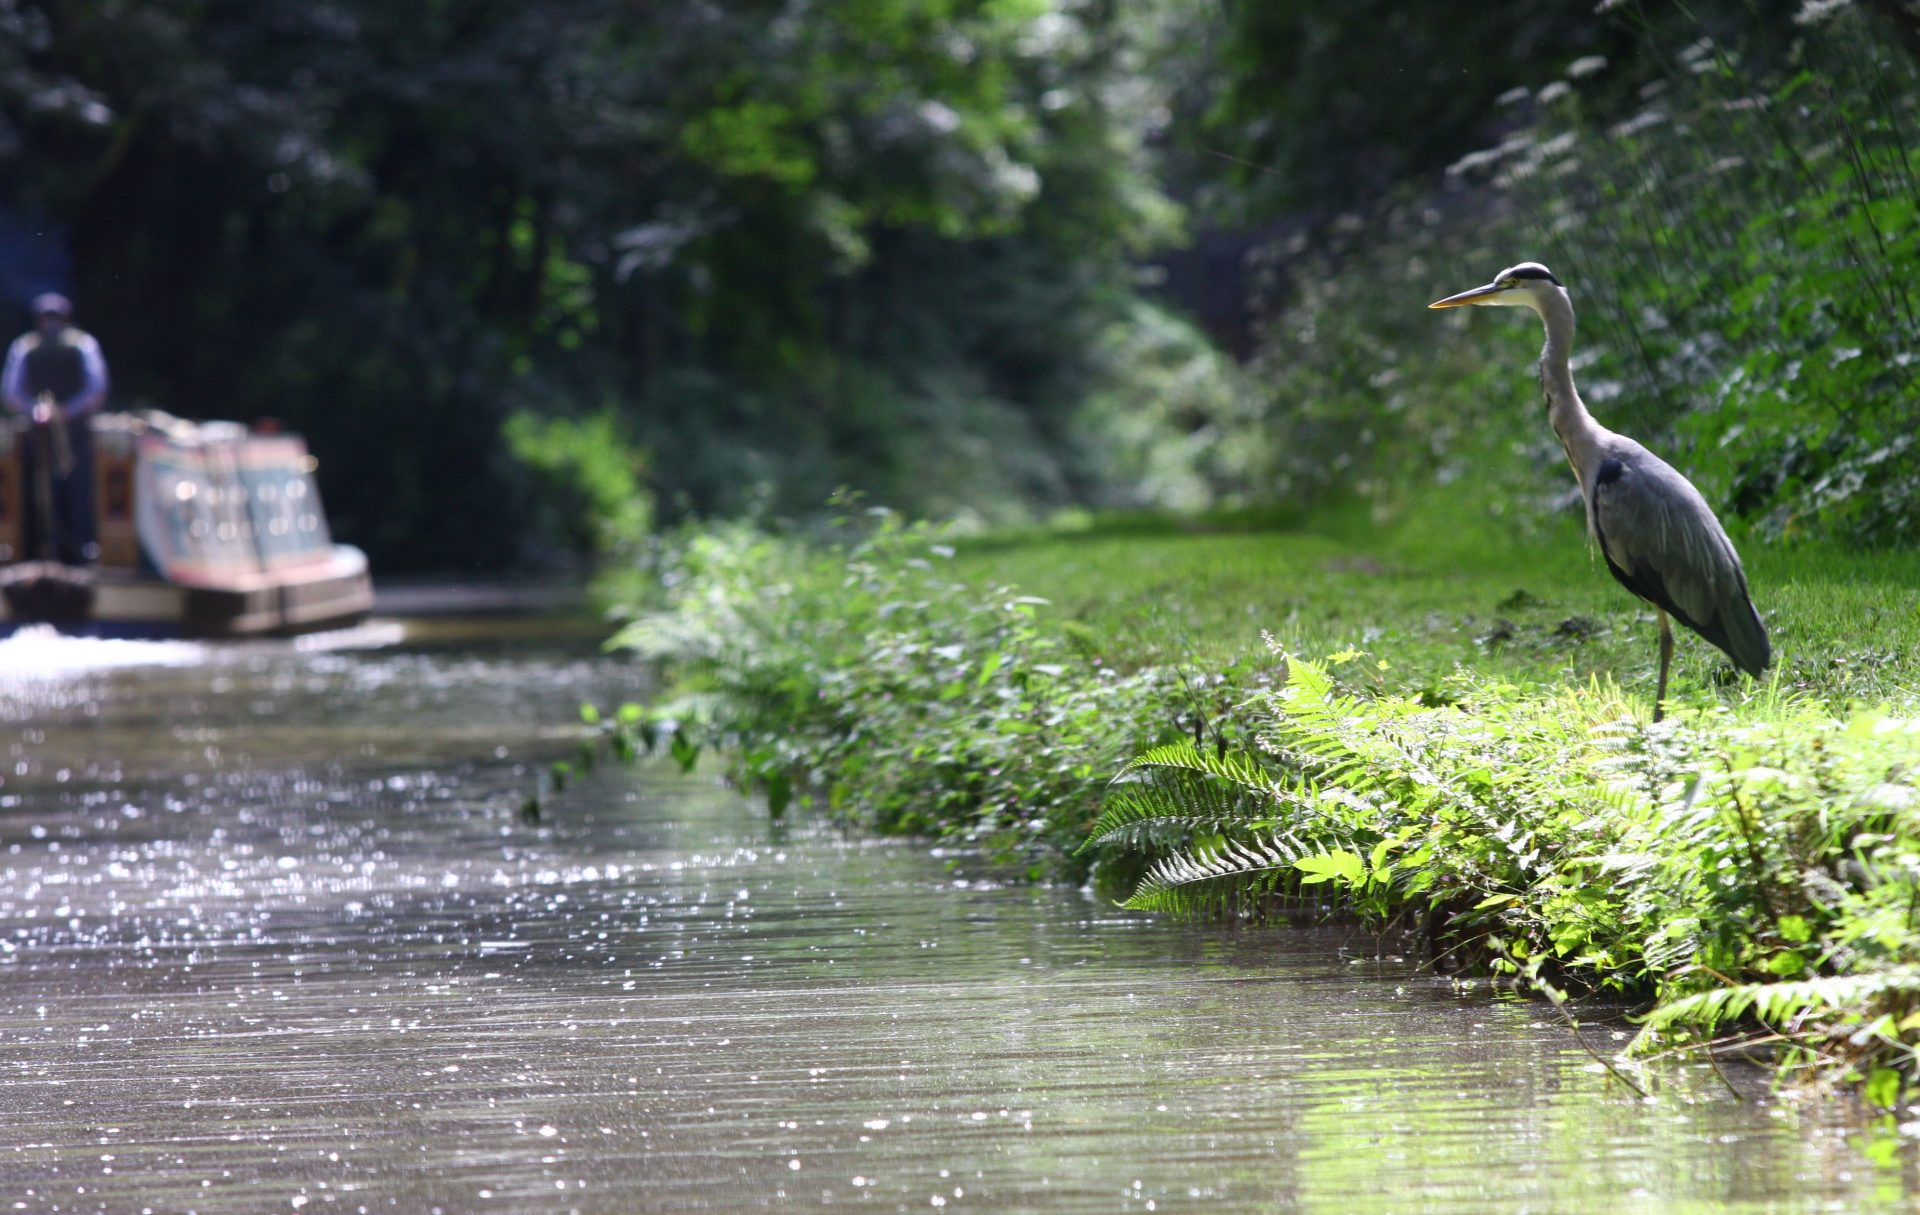 Herons know exactly where to fish on the canals. They are good indicators for fishermen.